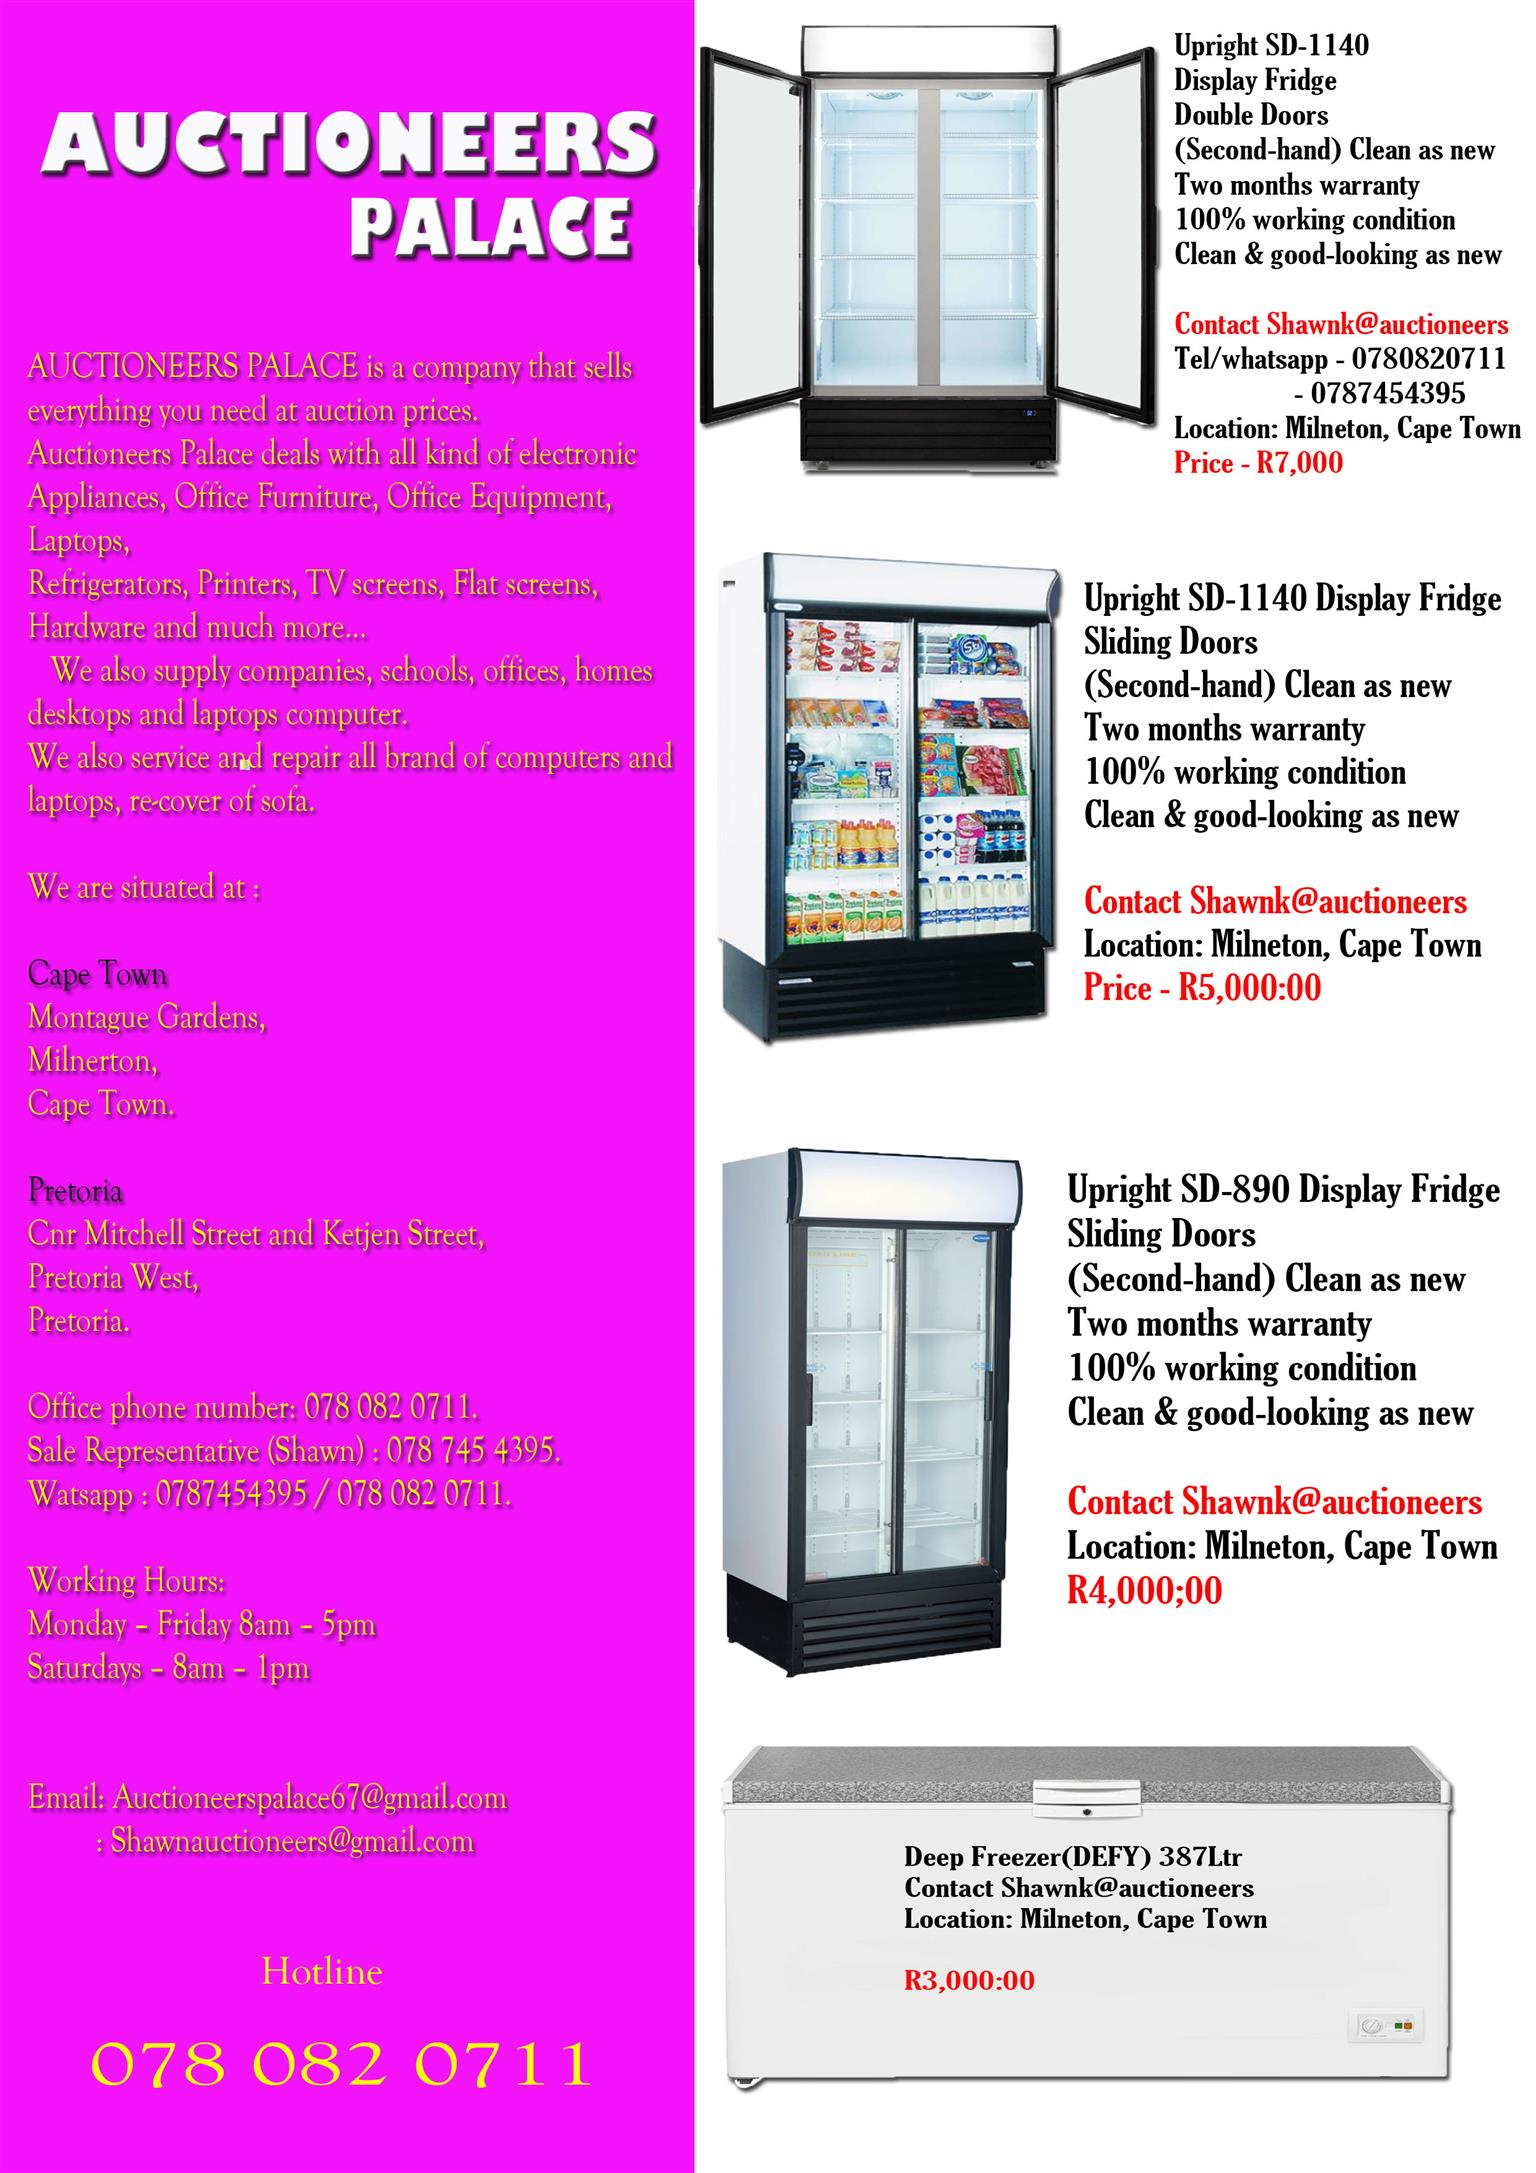 Commercial upright Display Fridge